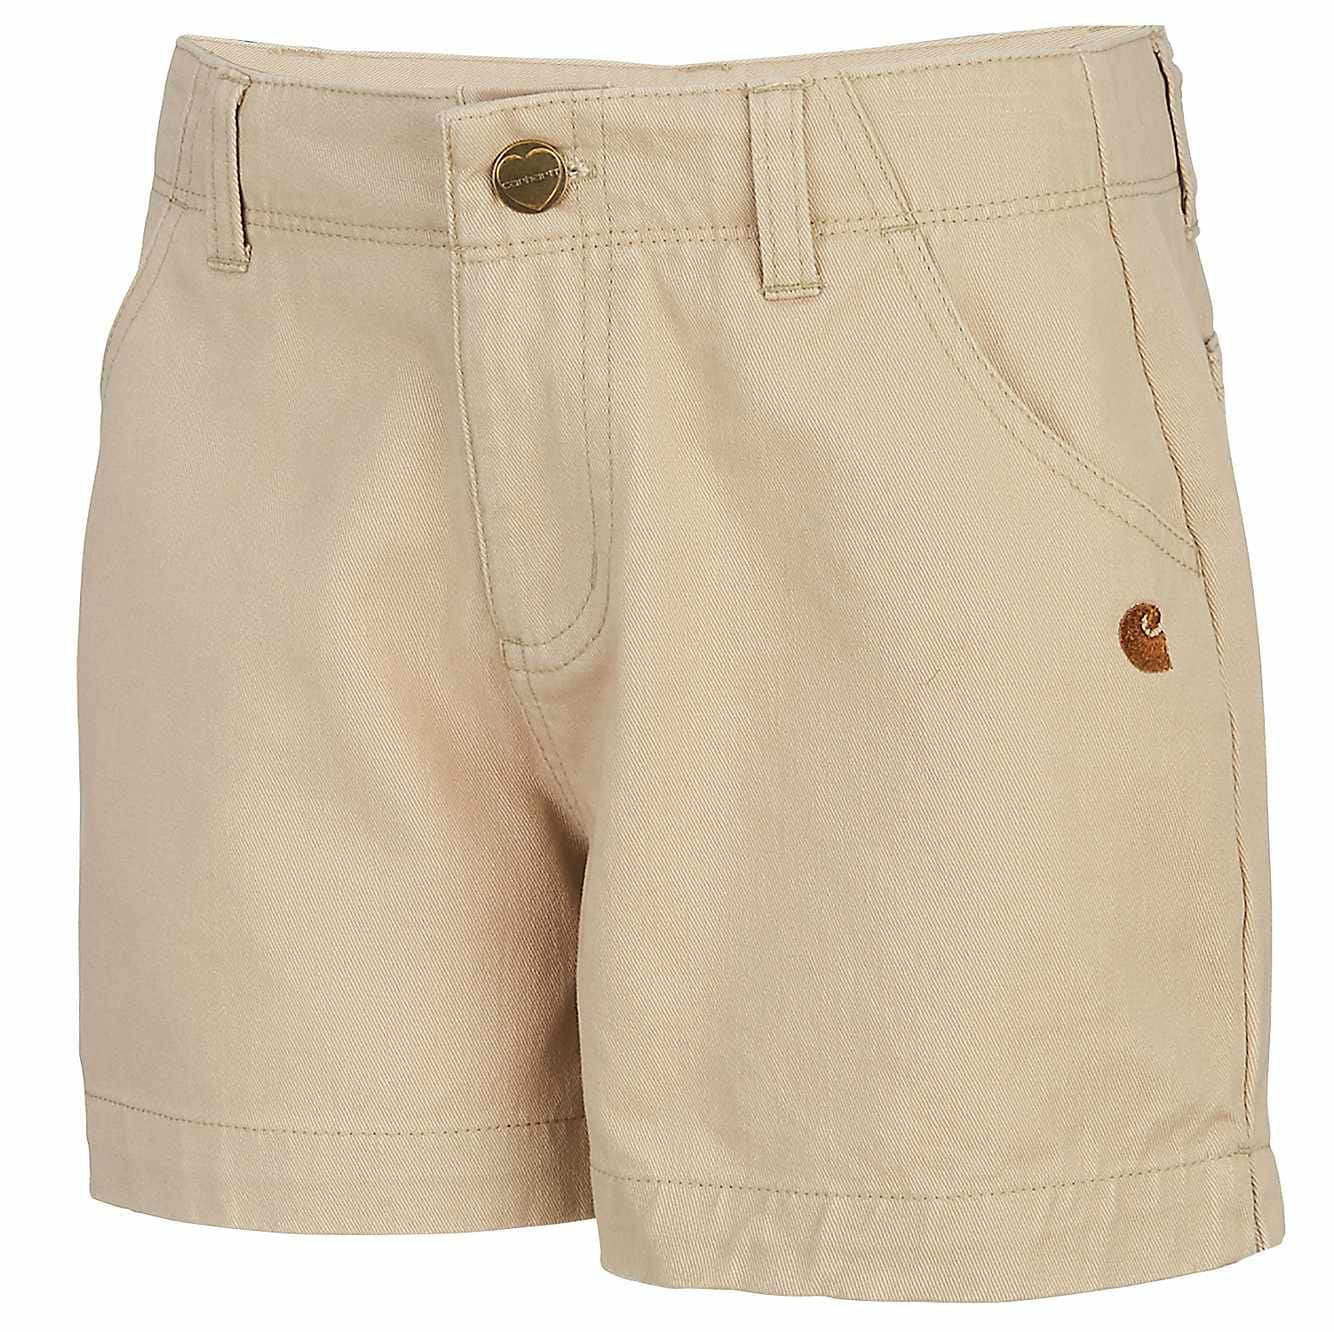 Picture of Twill Short in PKK-Pale Khaki